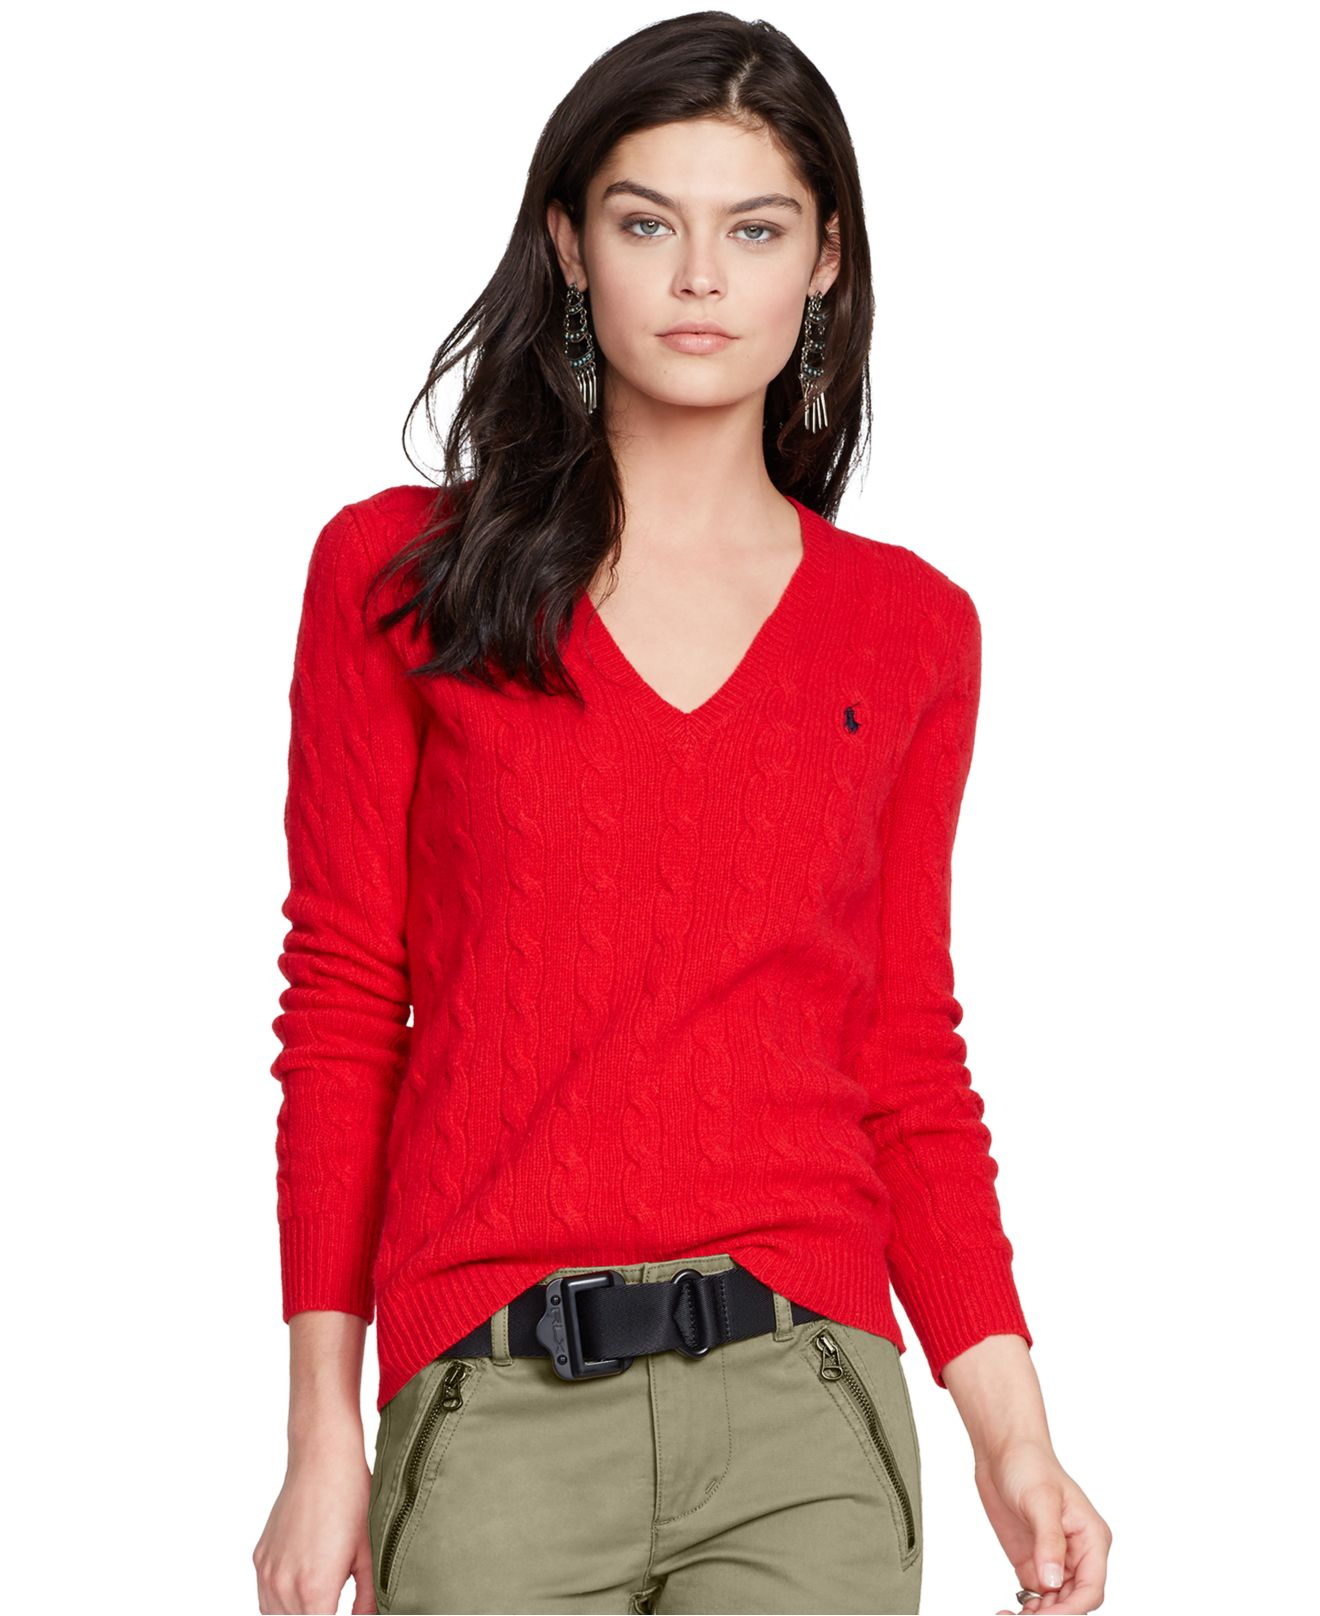 050efce2fe3a2 Lyst - Polo Ralph Lauren V-neck Cable-knit Wool-cashmere Sweater in Red